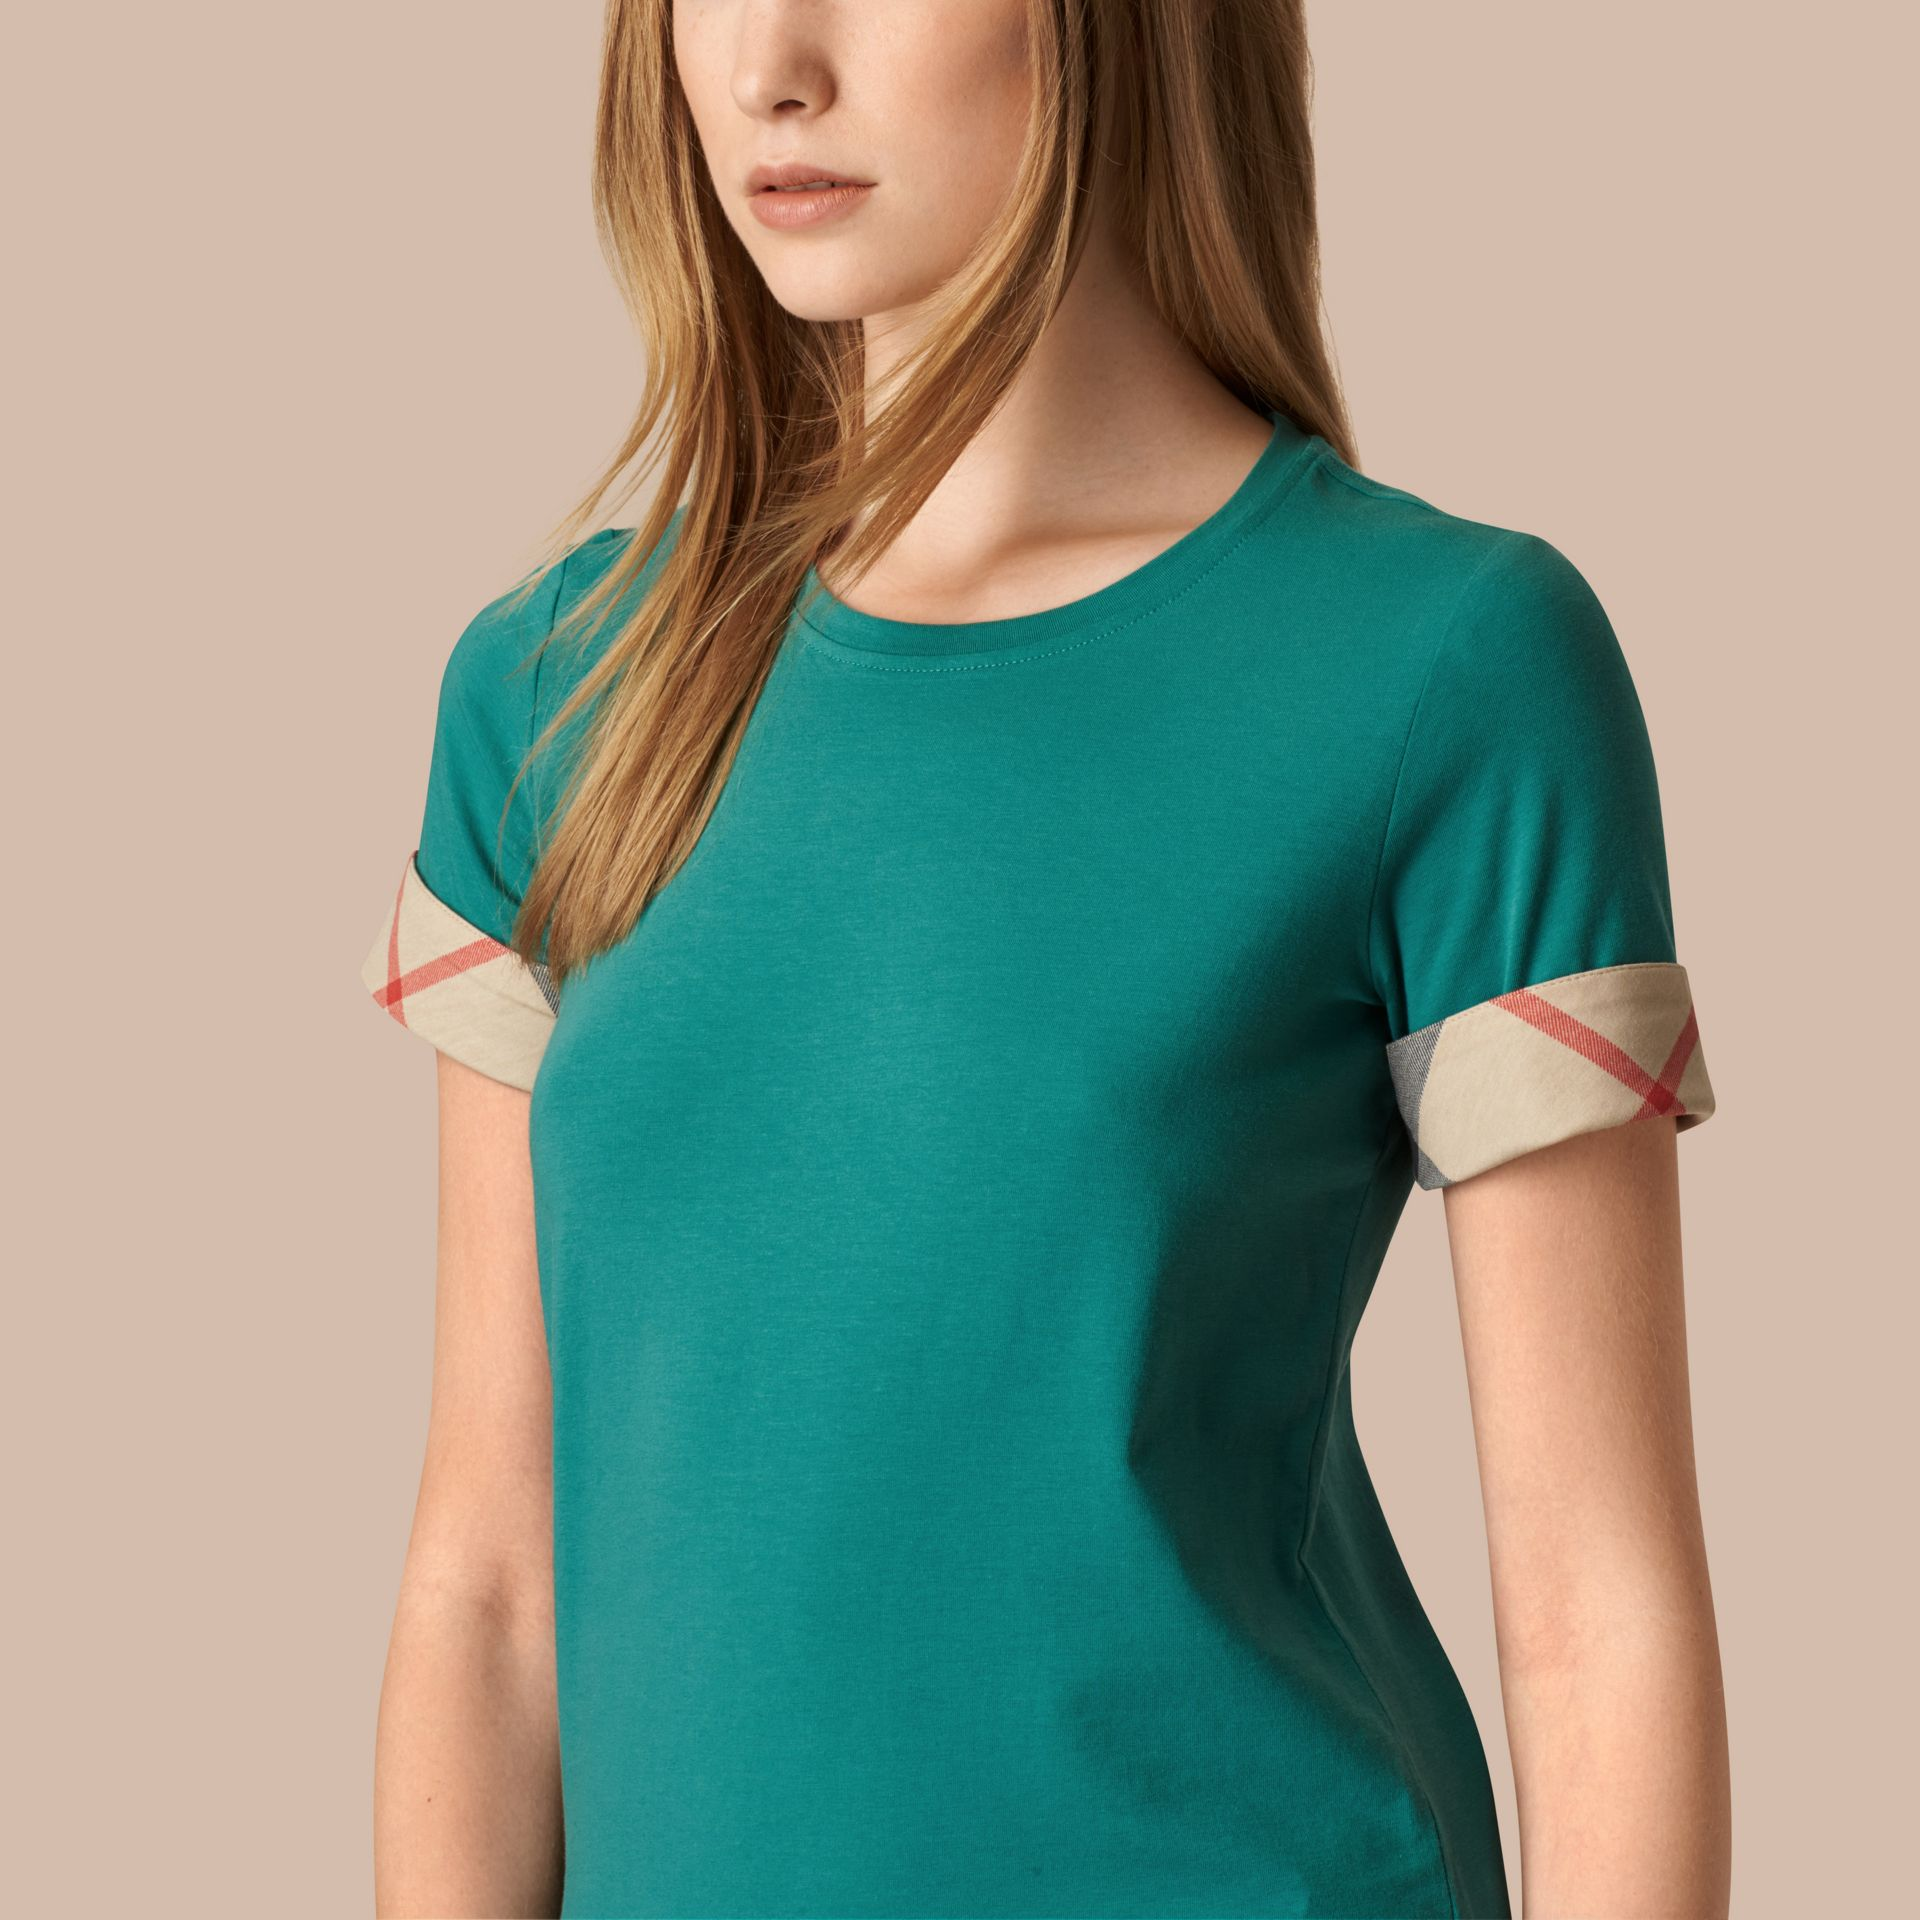 Aqua green Check Cuff Stretch Cotton T-Shirt Aqua Green - gallery image 3